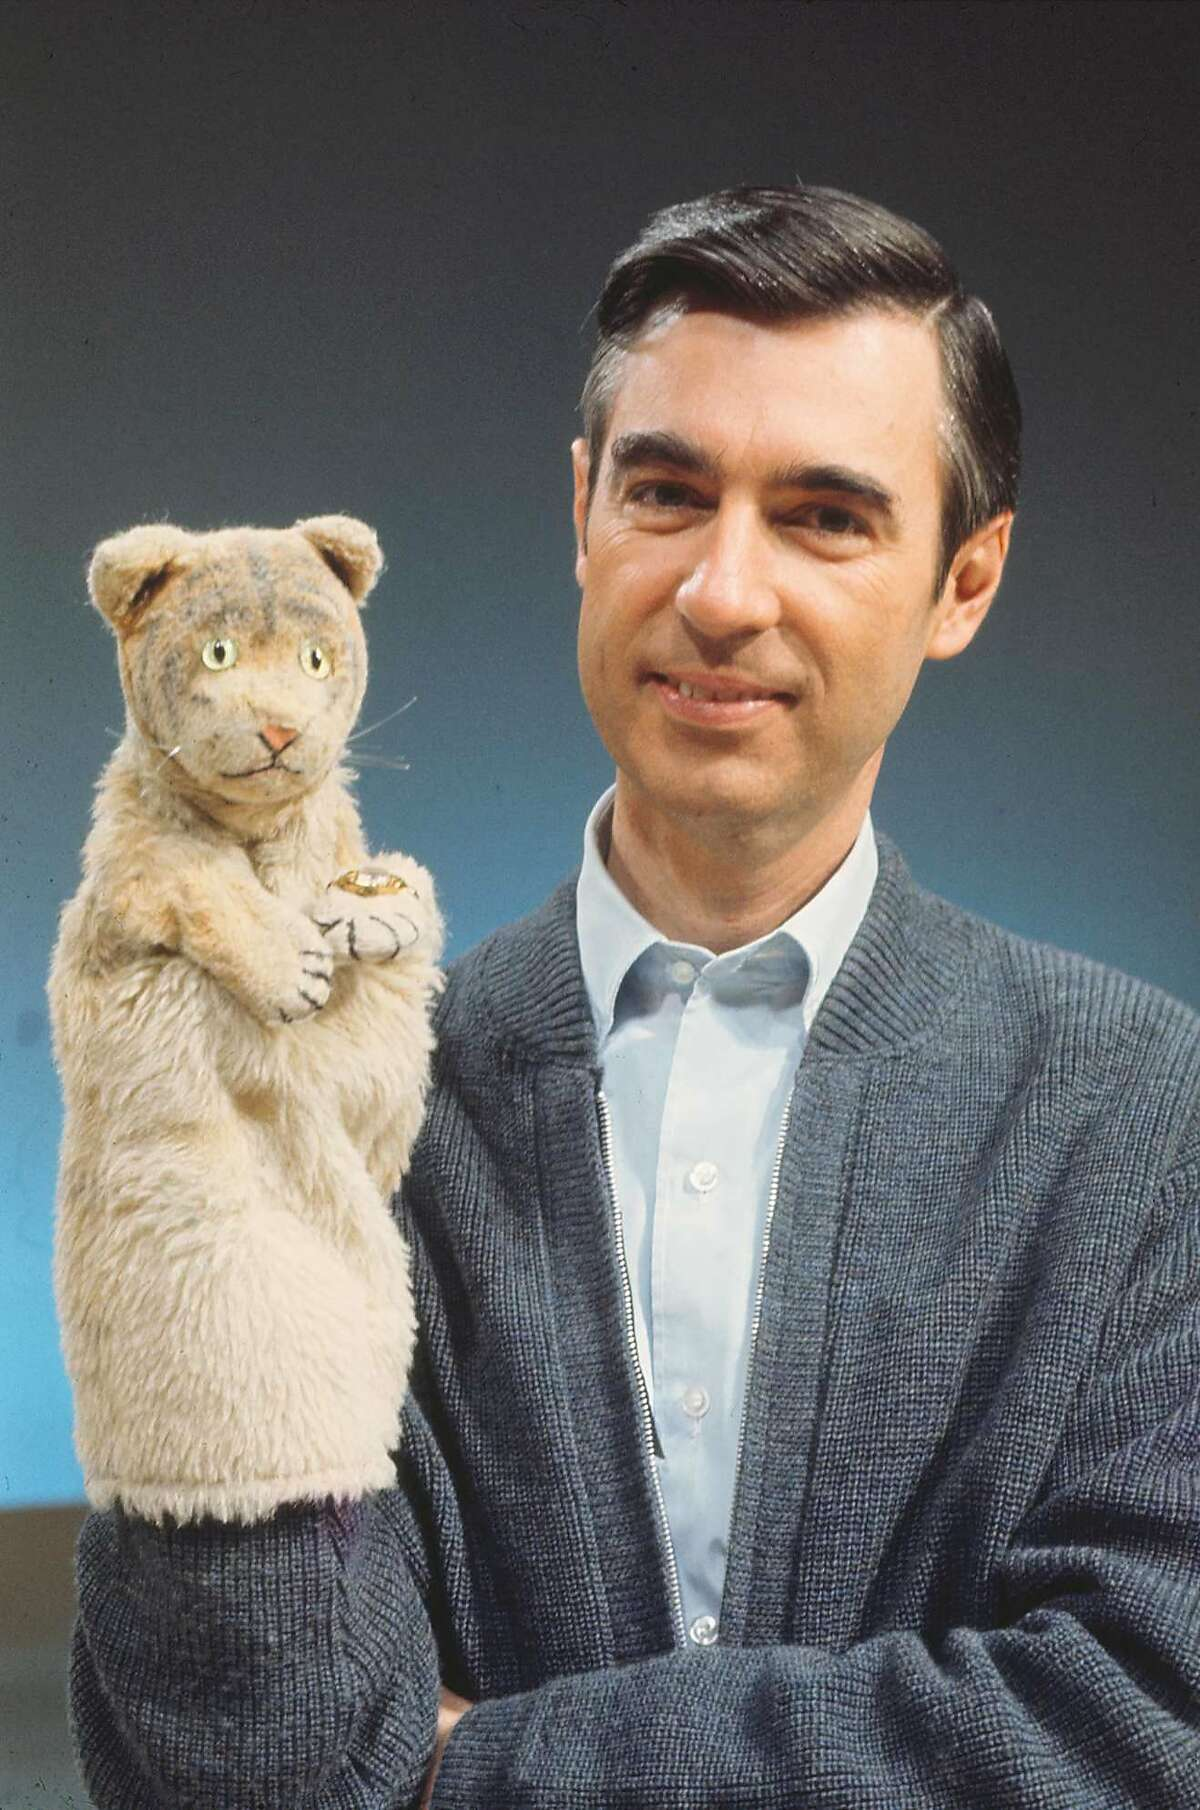 """Fred Rogers with Daniel Tiger from his show """"Mister Rogers' Neighborhood"""" from the film, """"Won't You Be My Neighbor?"""".Credit: The Fred Rogers Company"""